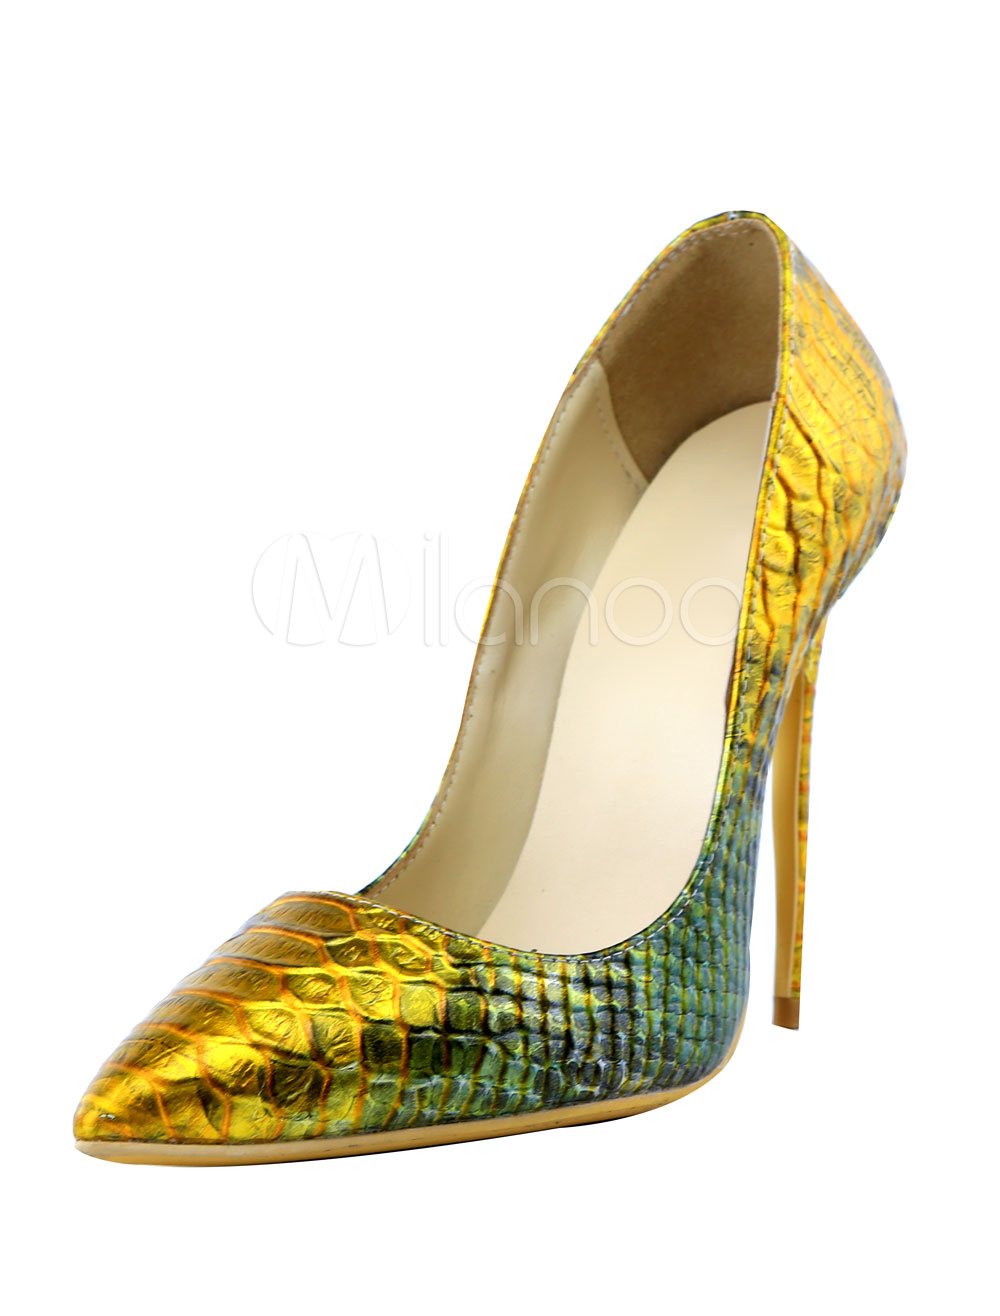 Buy Leather High Heels Gold Women's Snake Print Pointed Ombre Two Tone Slip-on Pumps for $62.99 in Milanoo store